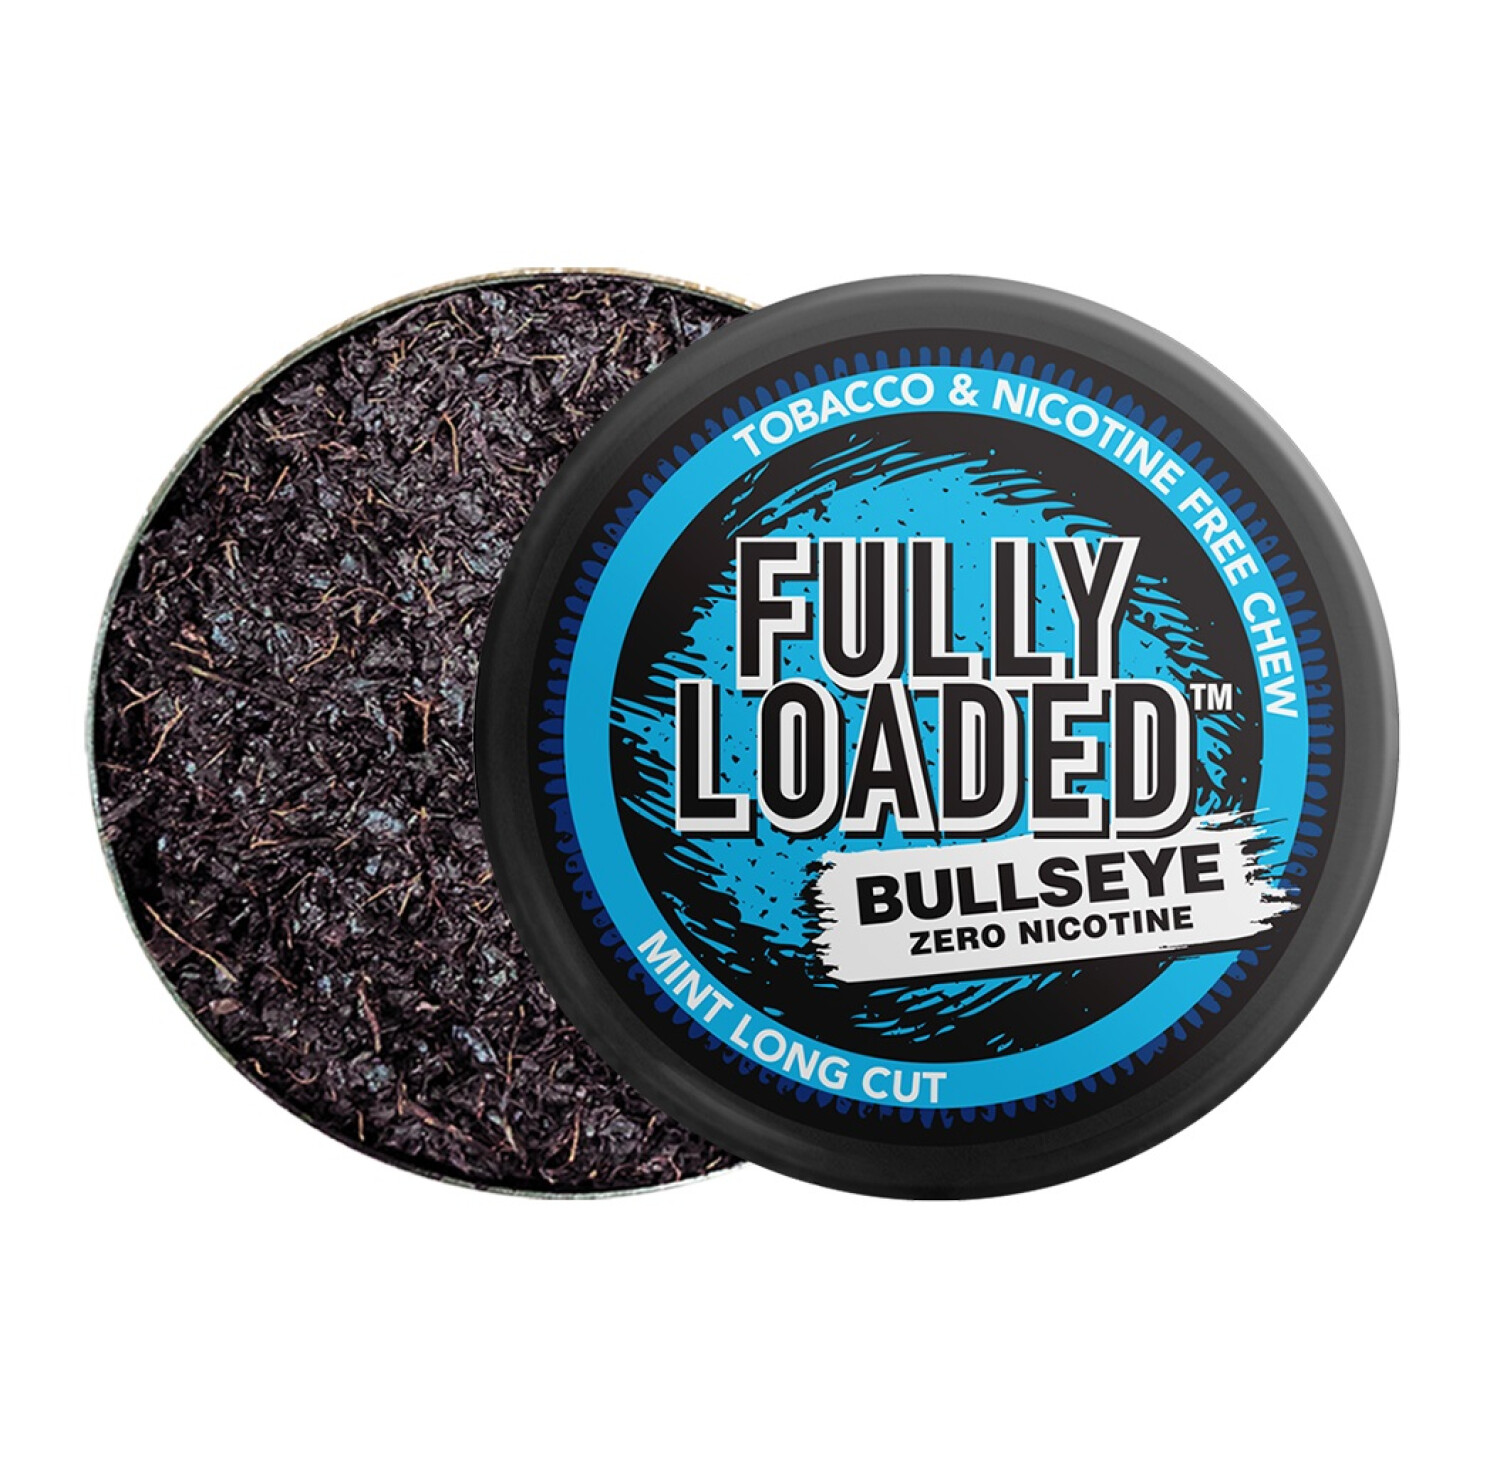 Fully Loaded Chew Tobacco and Nicotine Free Mint Bullseye Long Cut Bold Flavor, Chewing Alternative